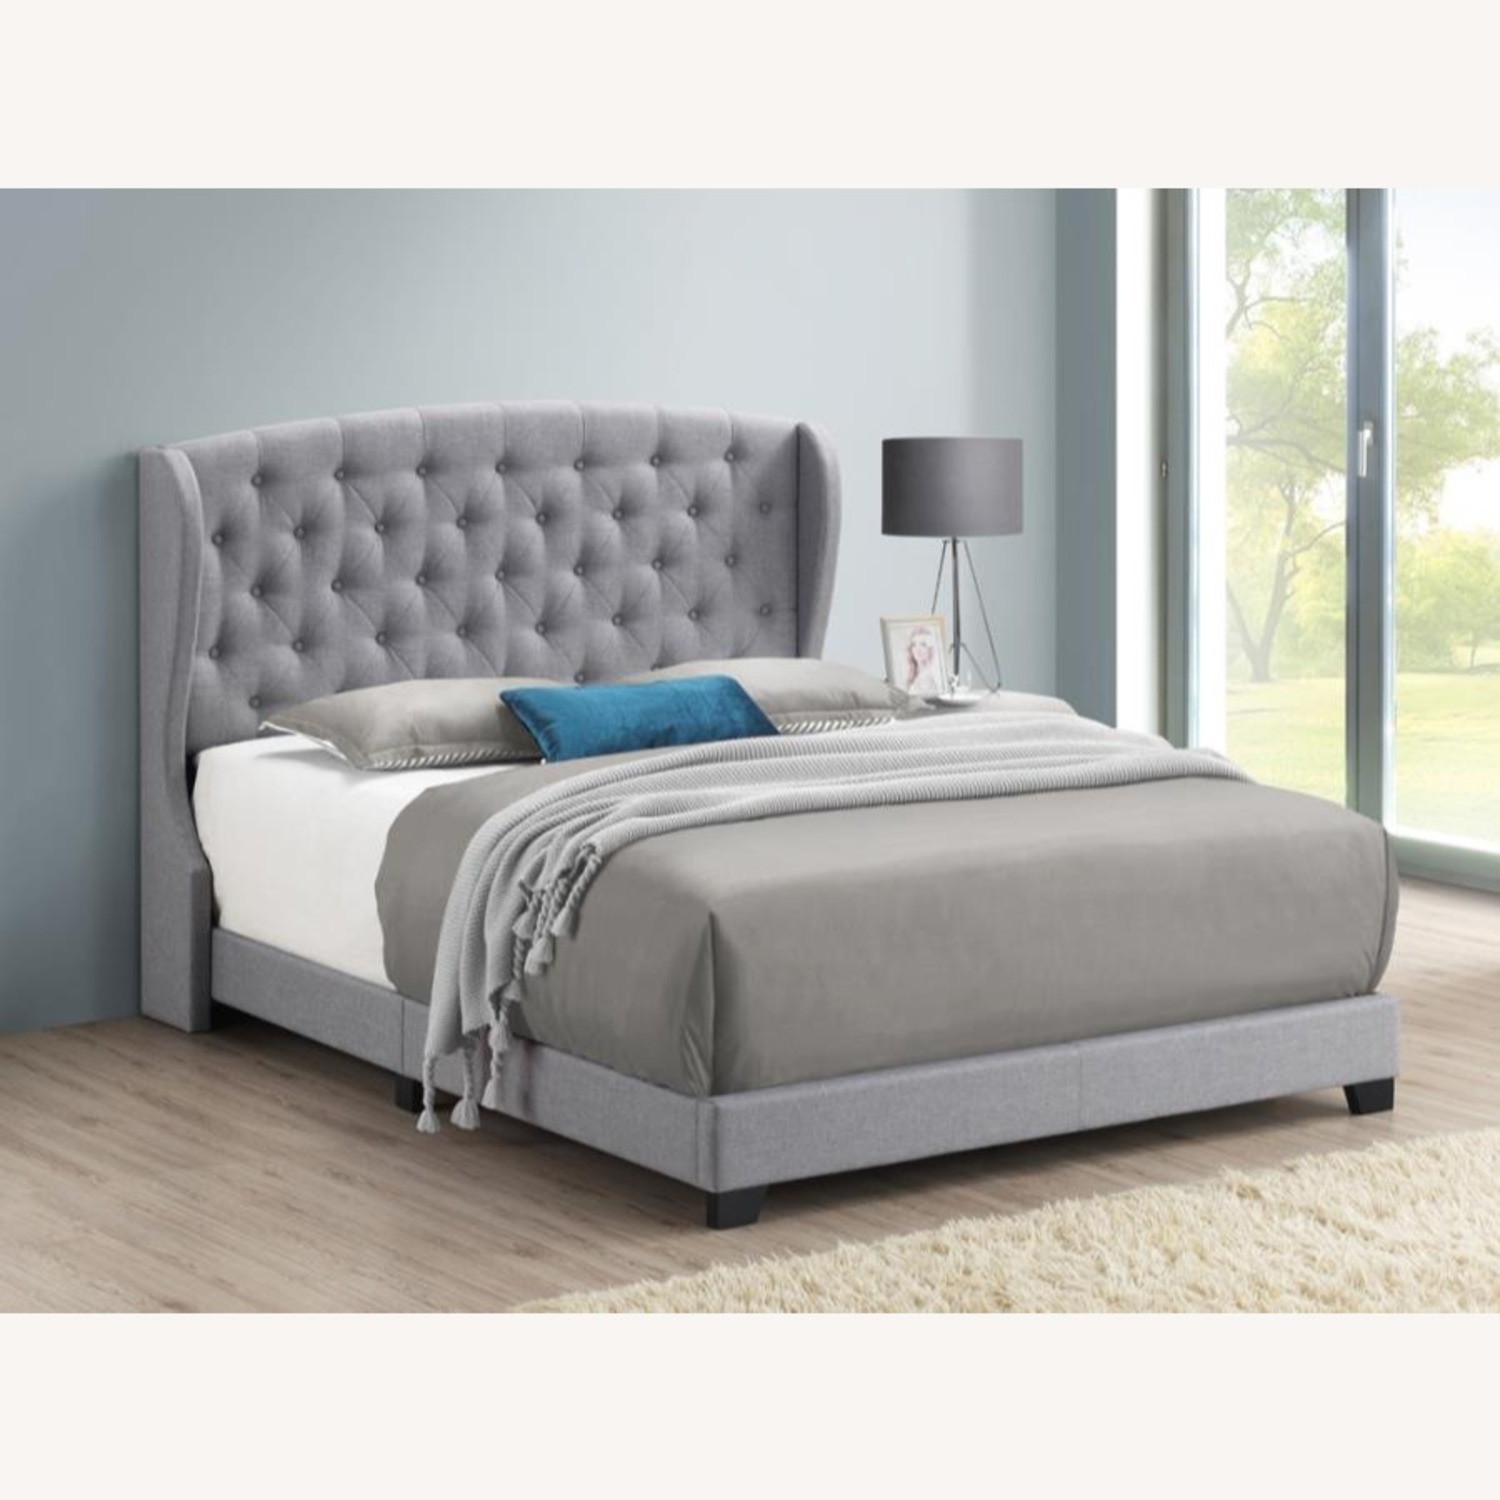 Queen Bed In Grey Linen-Like Fabric Upholstery - image-2